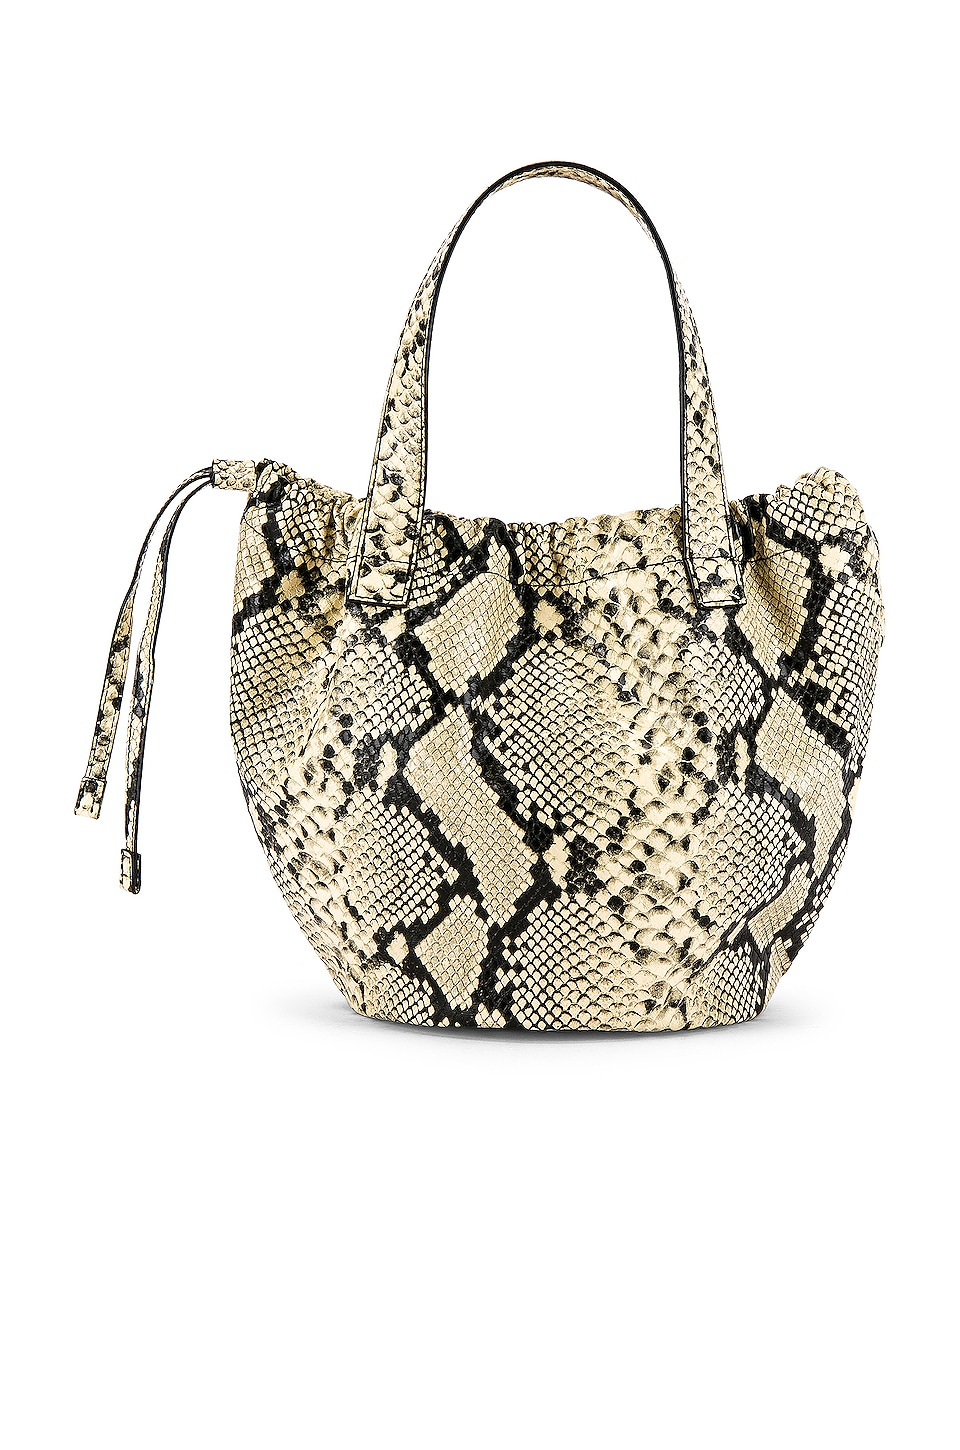 L'Academie Jordan Bucket Bag in Snake